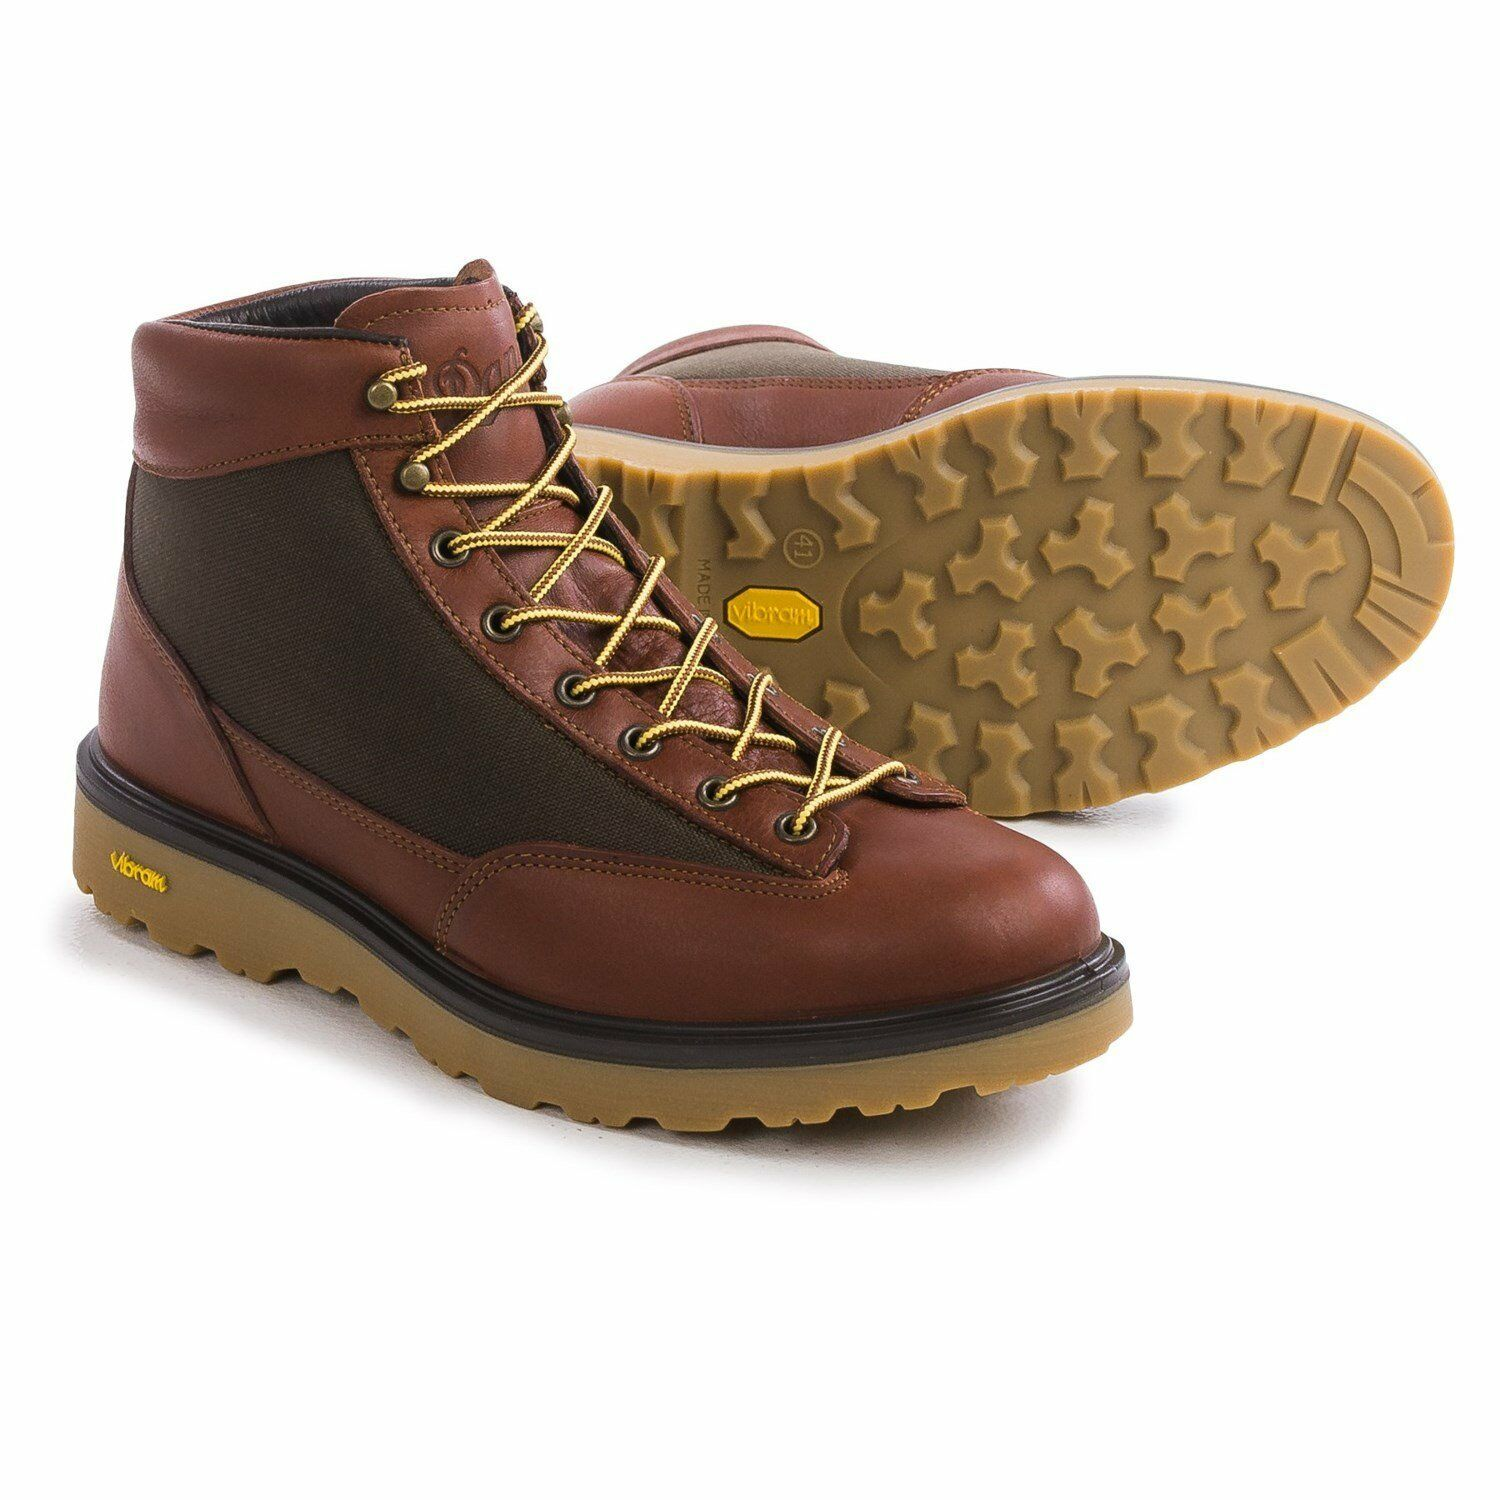 Danner - DL2 Boots - Danner Lace-Ups (For Uomo) 820599